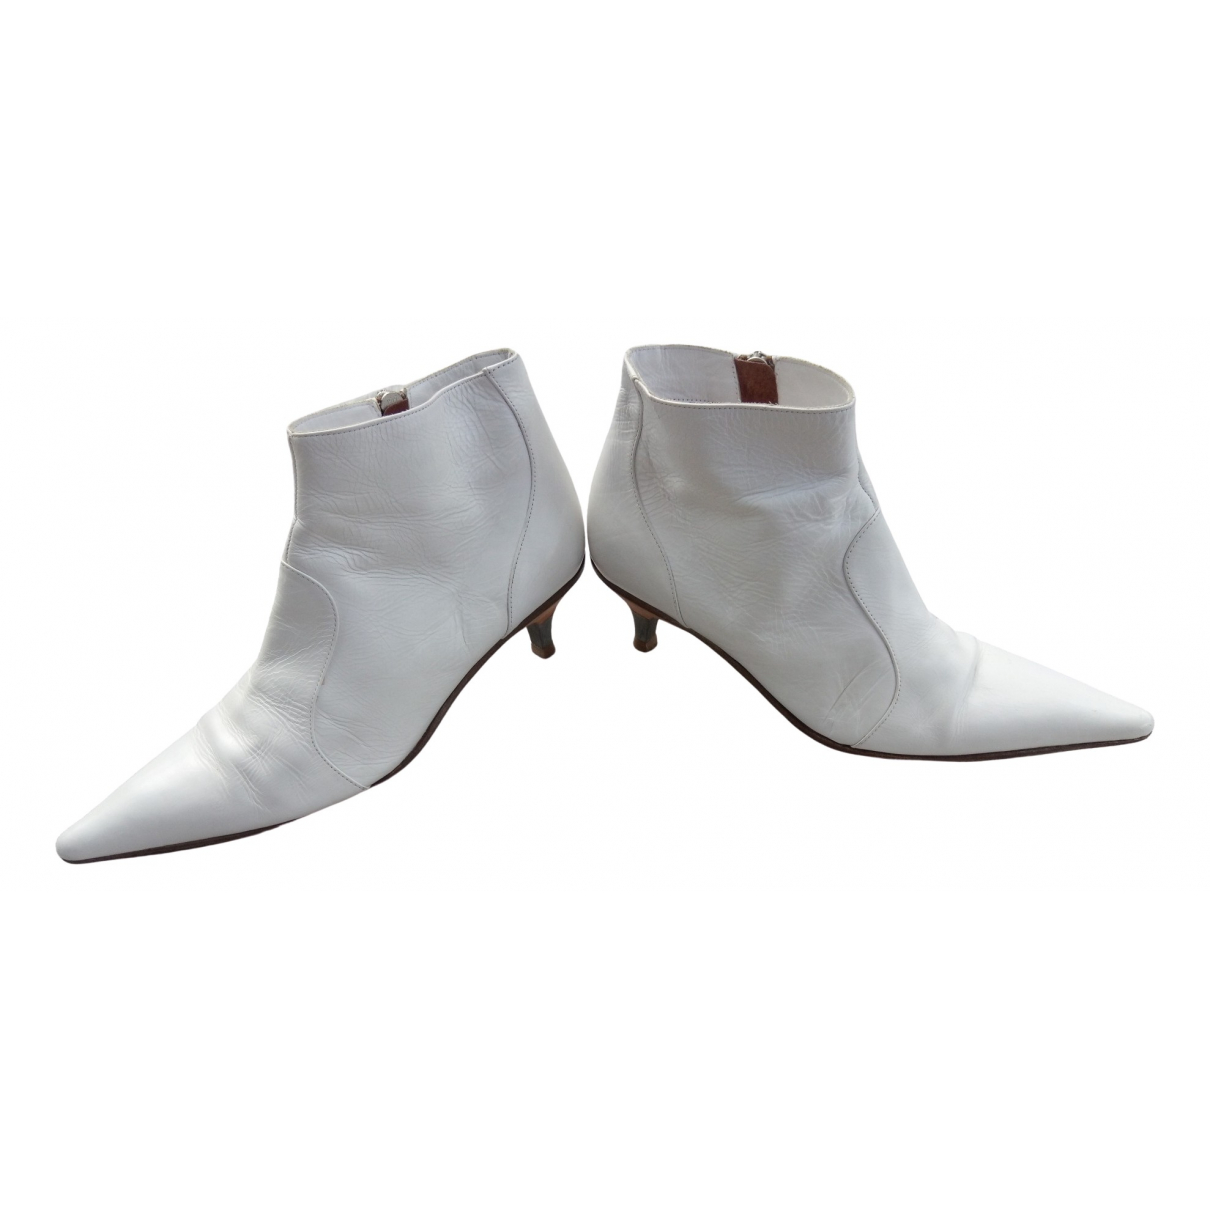 Dries Van Noten N White Leather Ankle boots for Women 36 EU